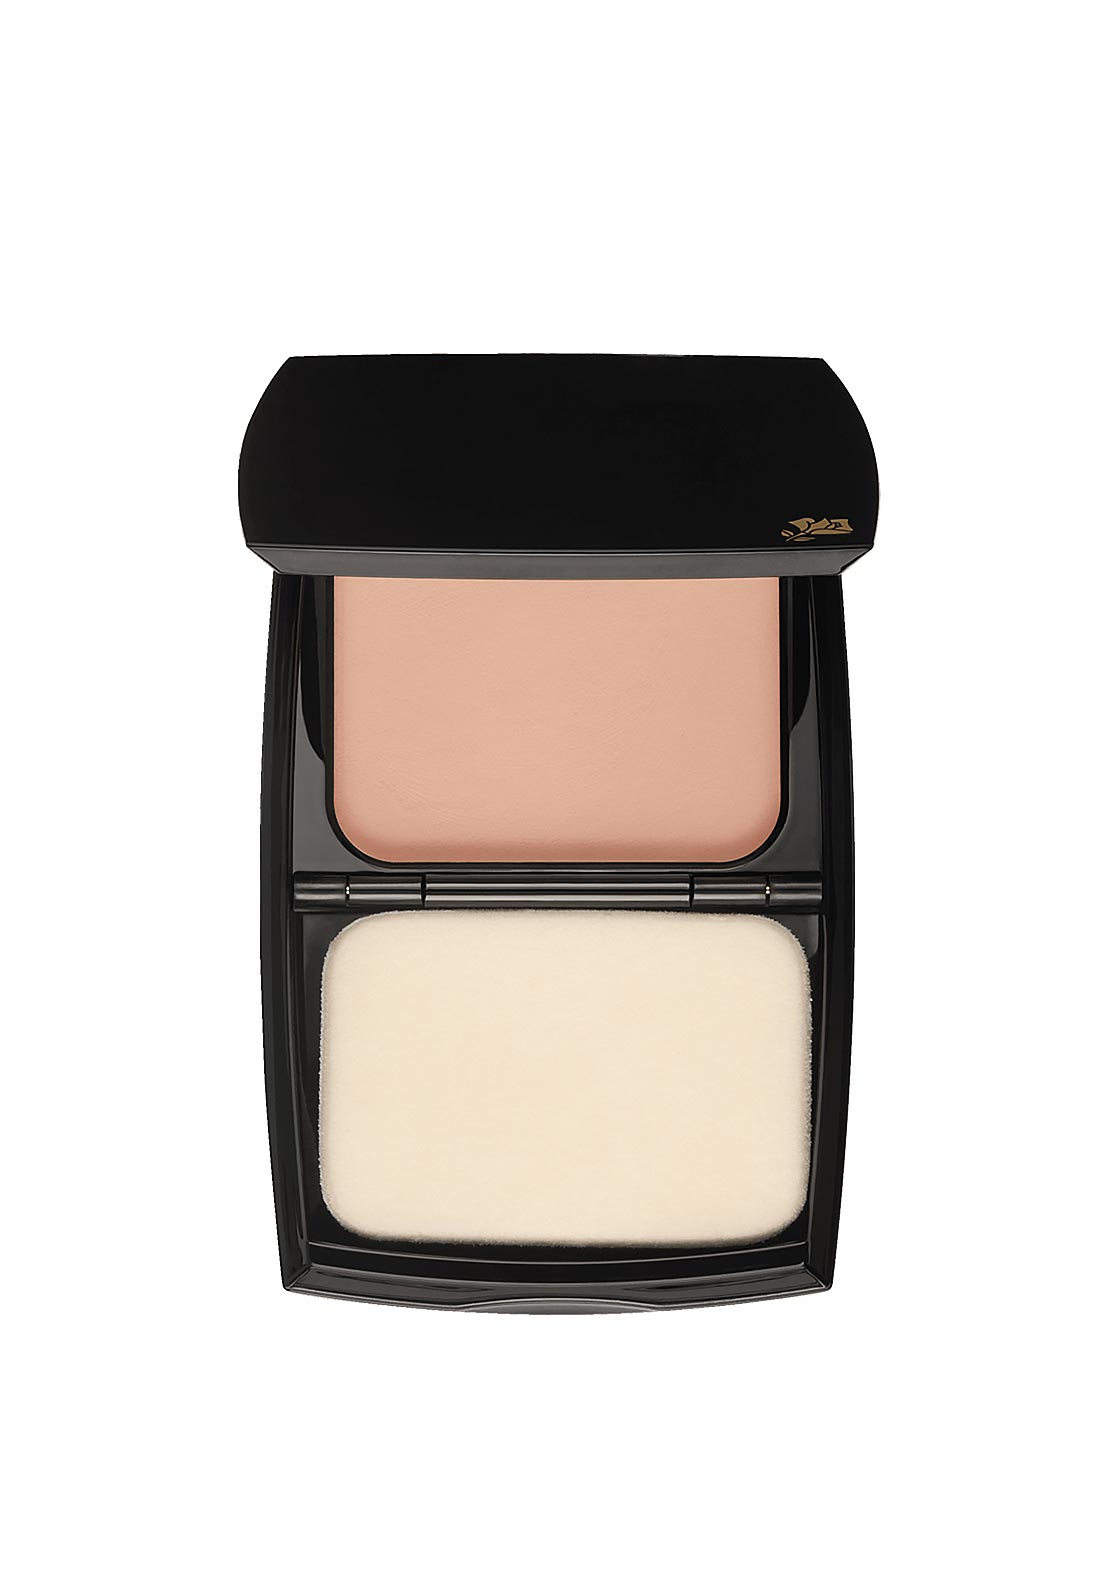 Lancome Teint Idole Ultra Compact Powder Foundation- 04